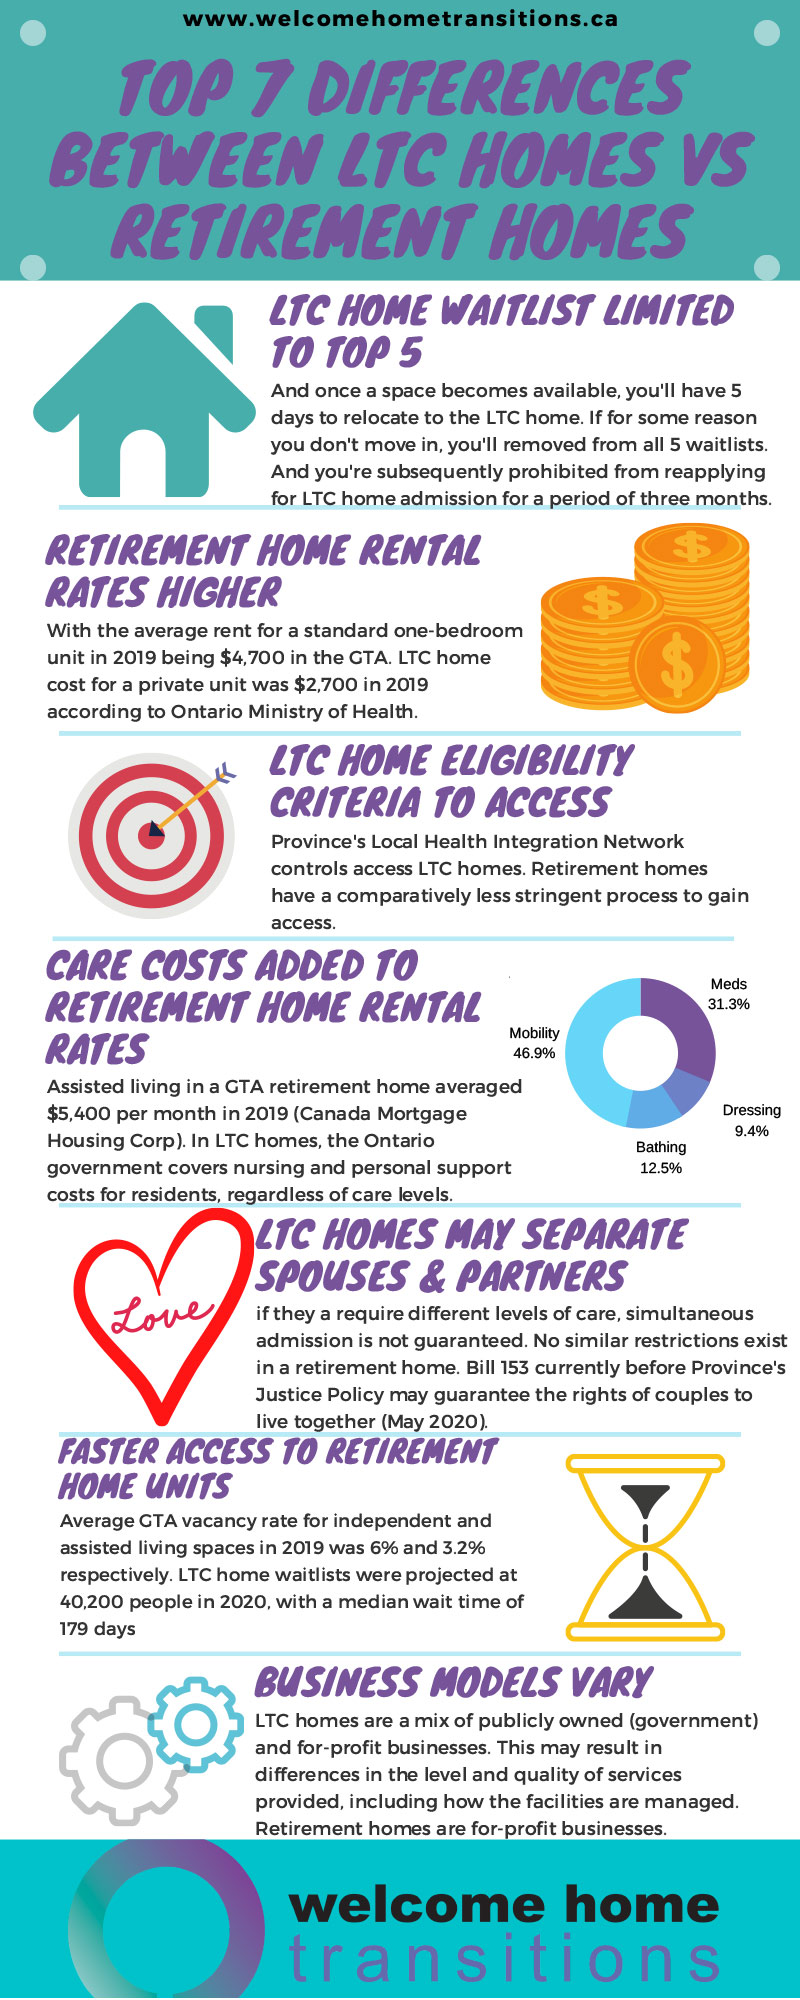 Infographic Top 7 Differences Between LTC Homes and Retirement Homes